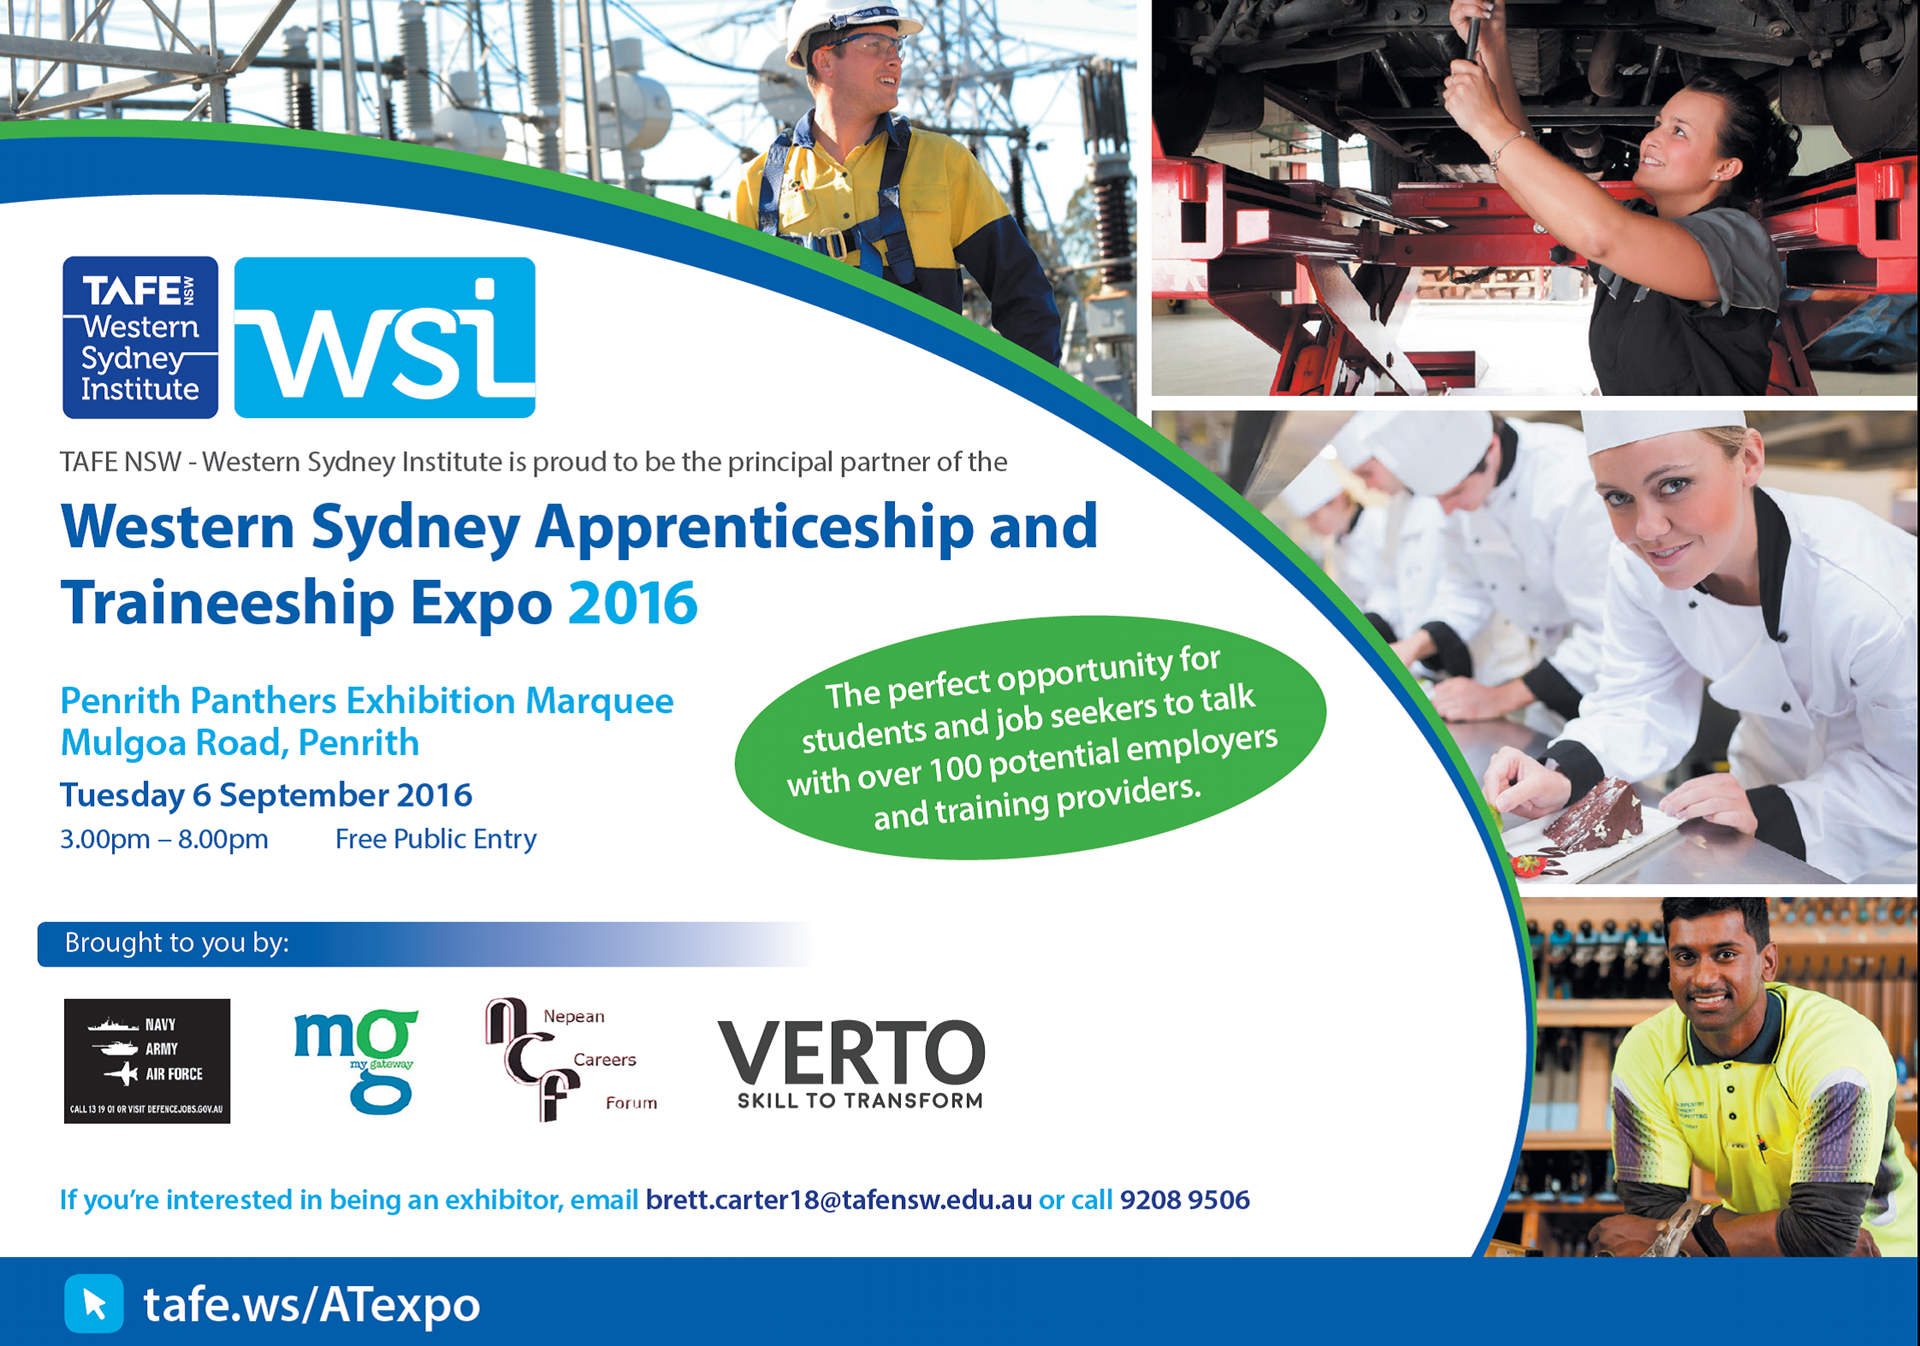 Western Sydney Business Connection - TAFE NSW WSI To Partner